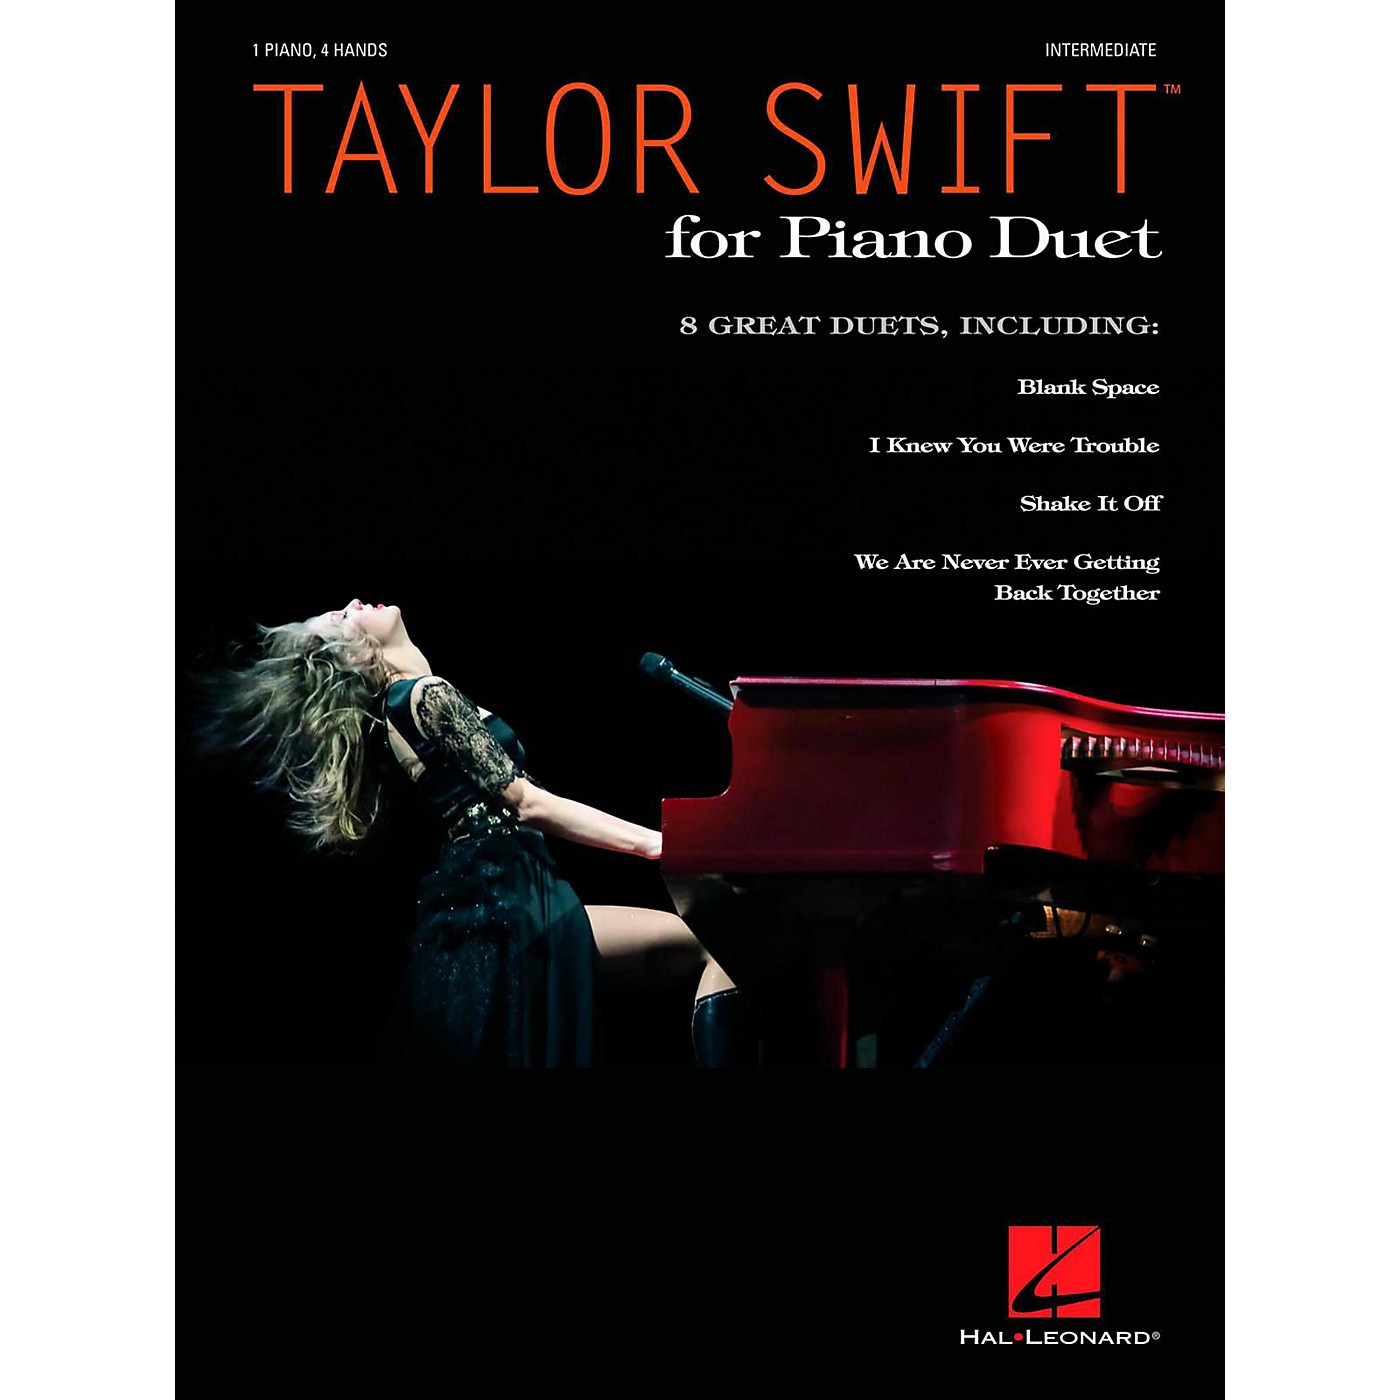 Hal Leonard Taylor Swift For Piano Duet (1 Piano 4 Hands) - Intermediate Level thumbnail